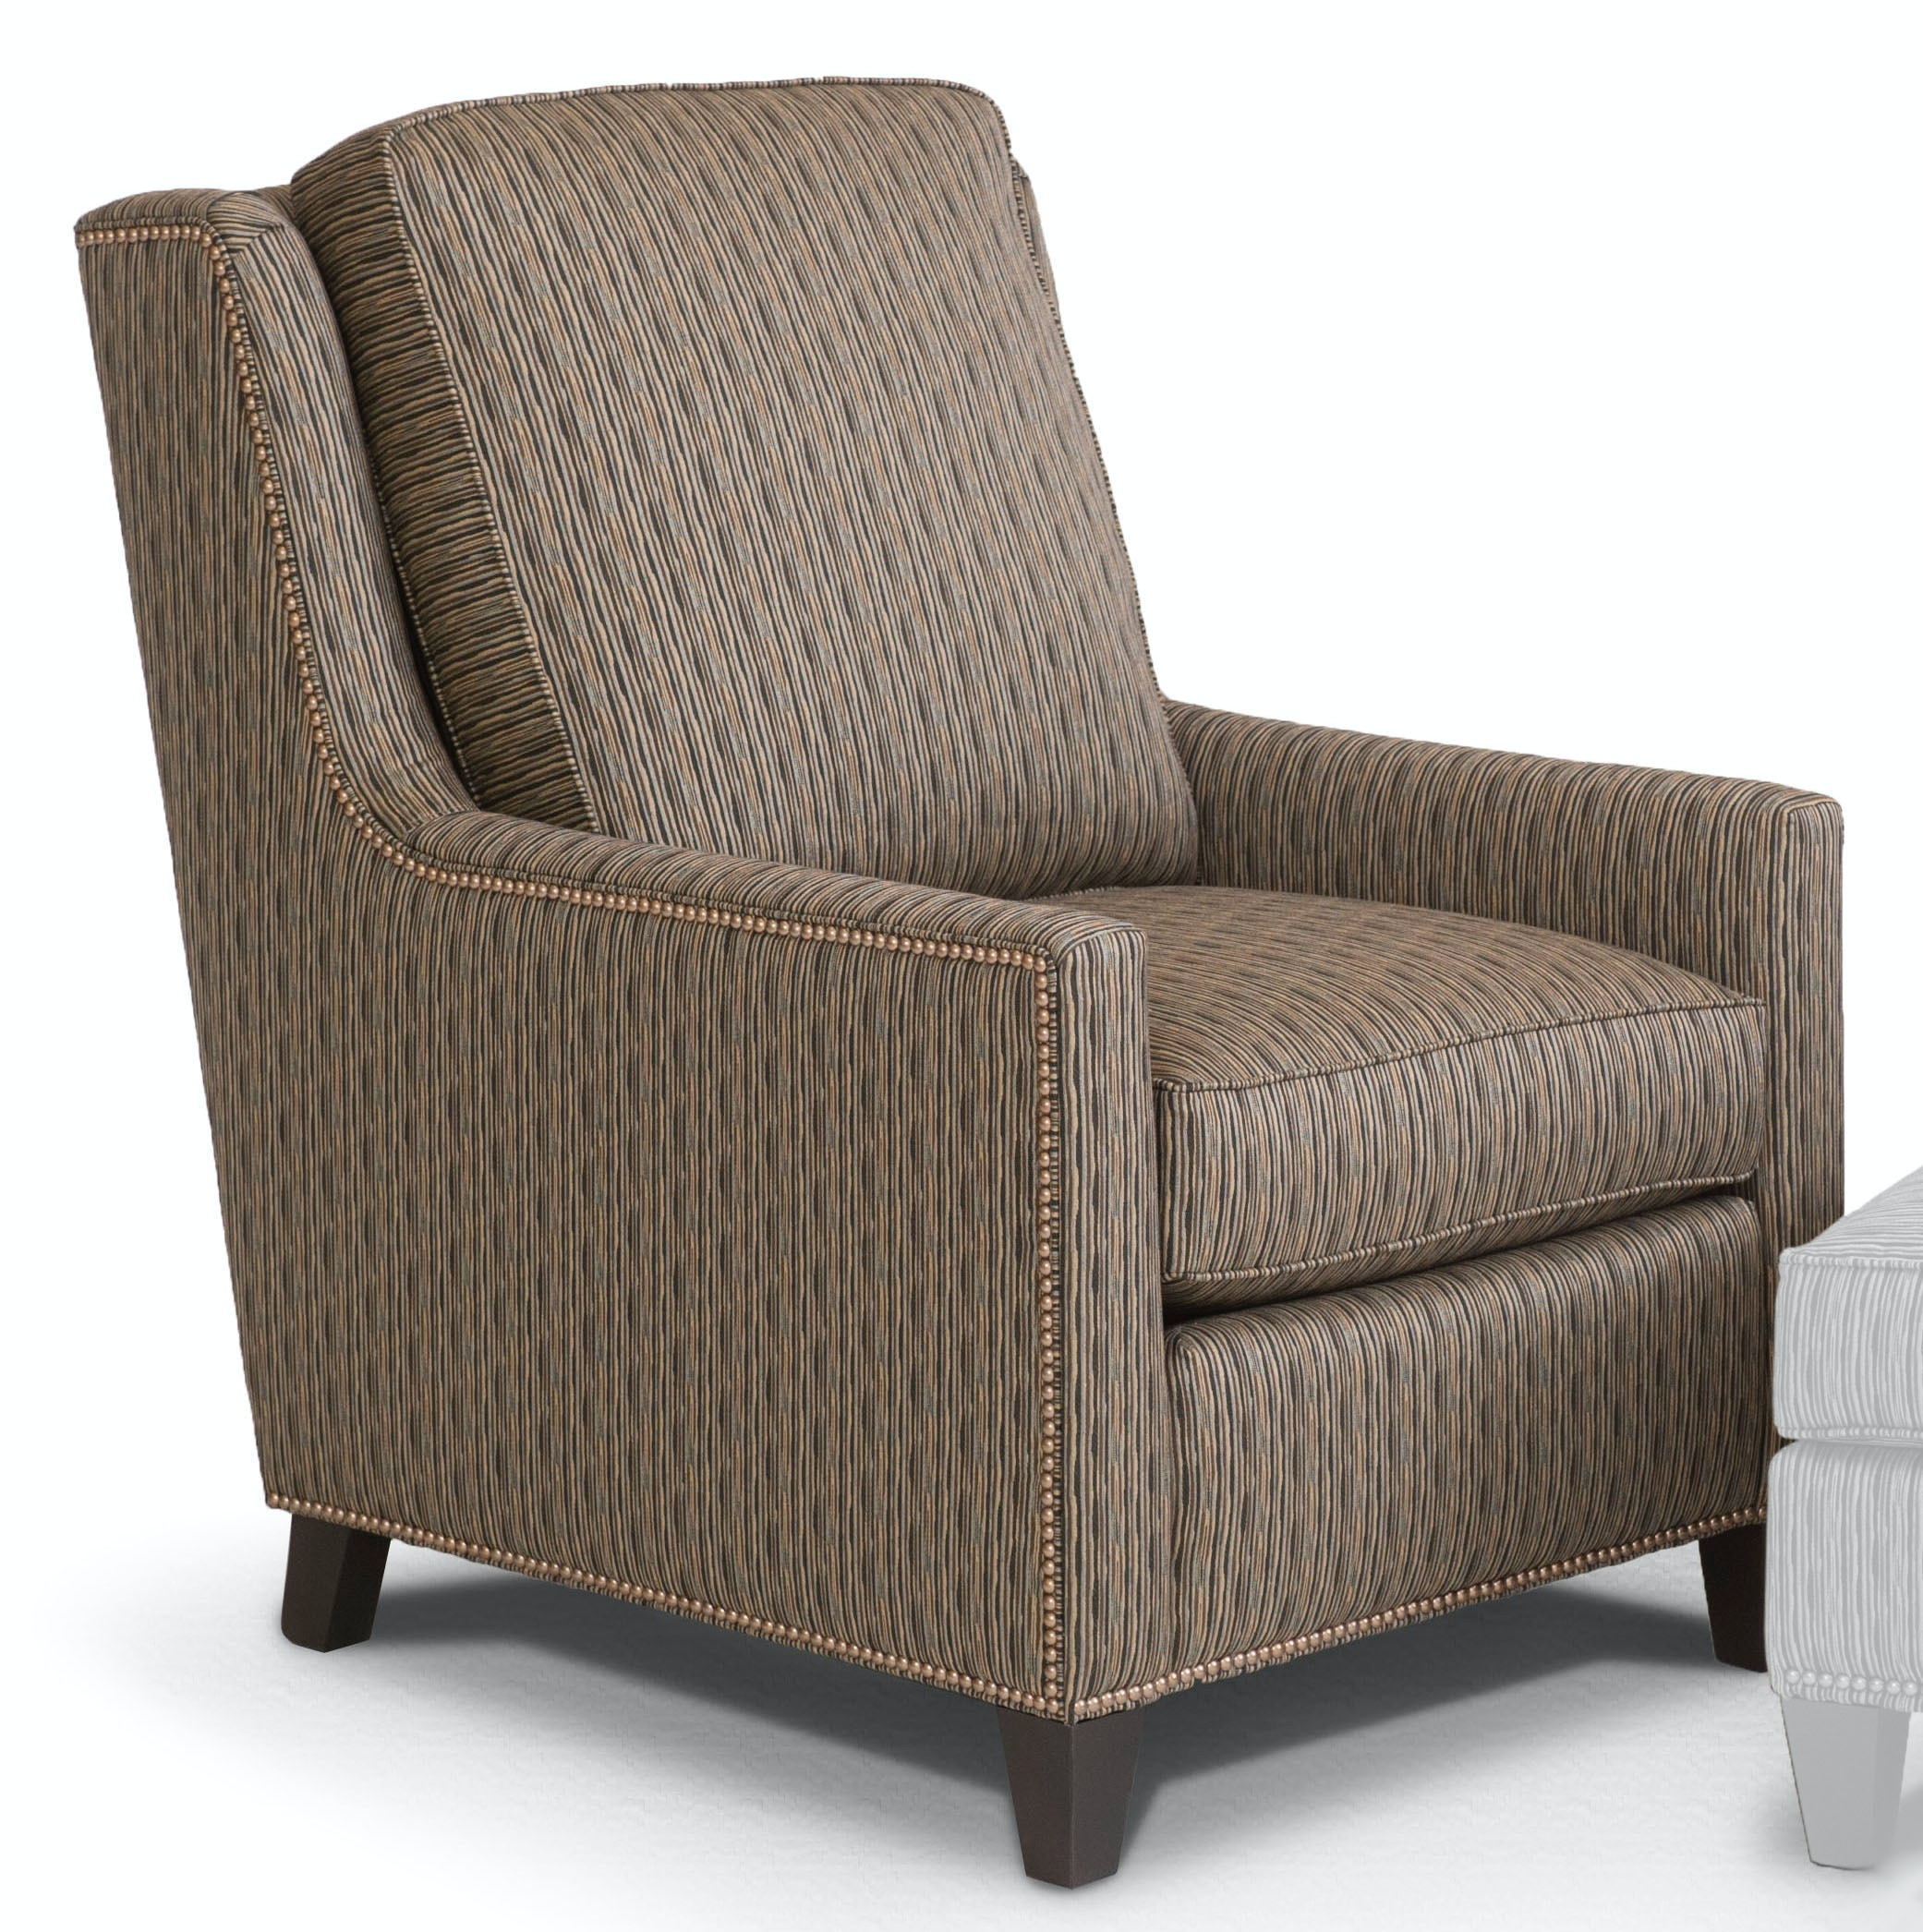 Smith Brothers Pressback Reclining Chair 501 33